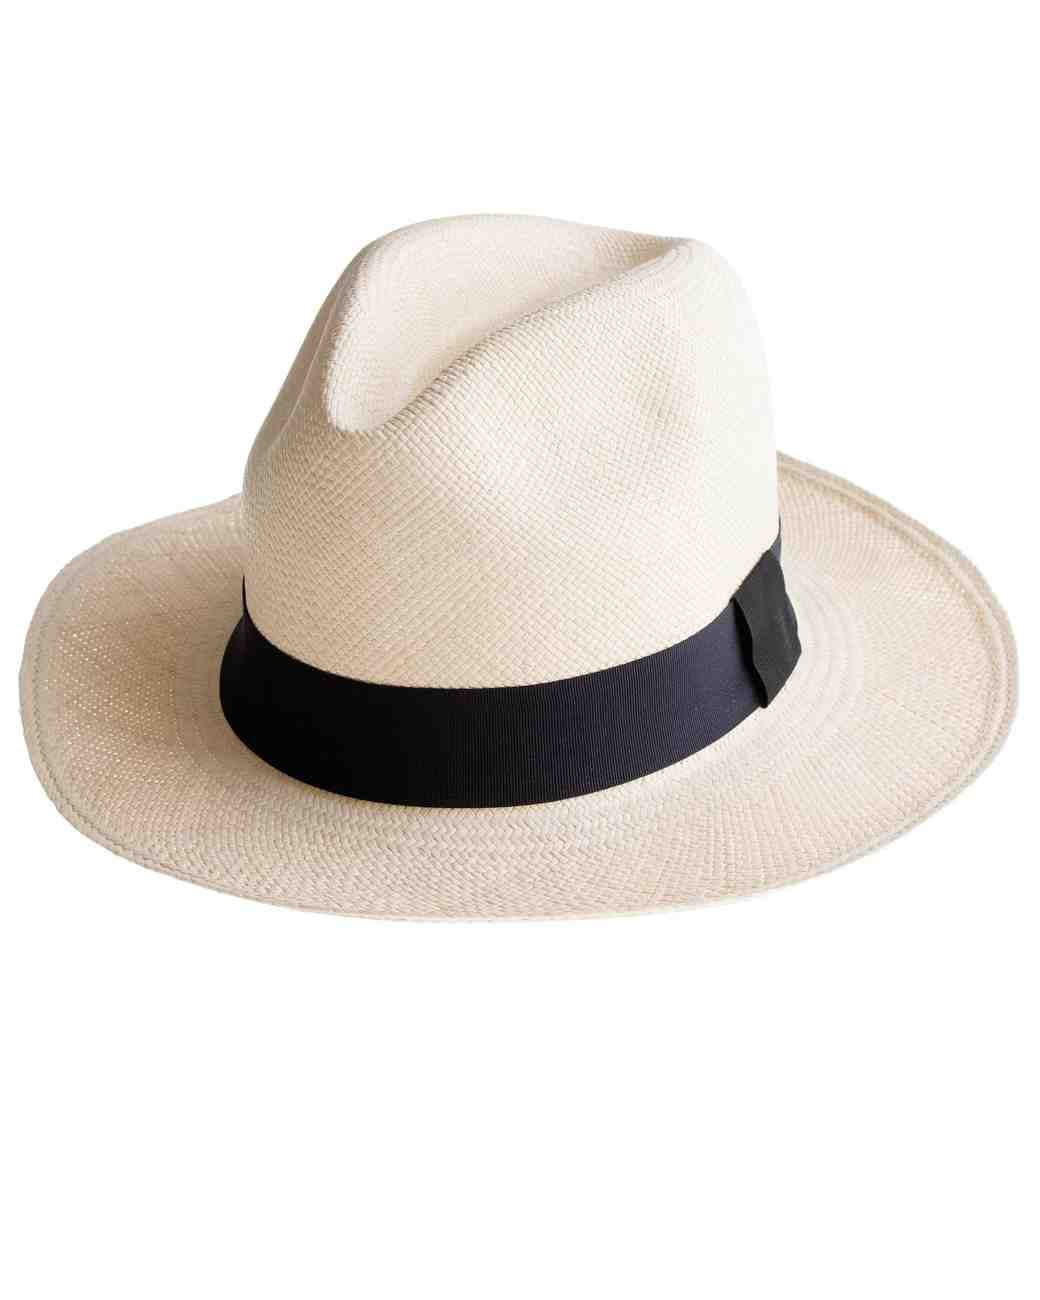 will-you-be-my-bridesmaid-idea-jcrew-panama-hat-0216.jpg